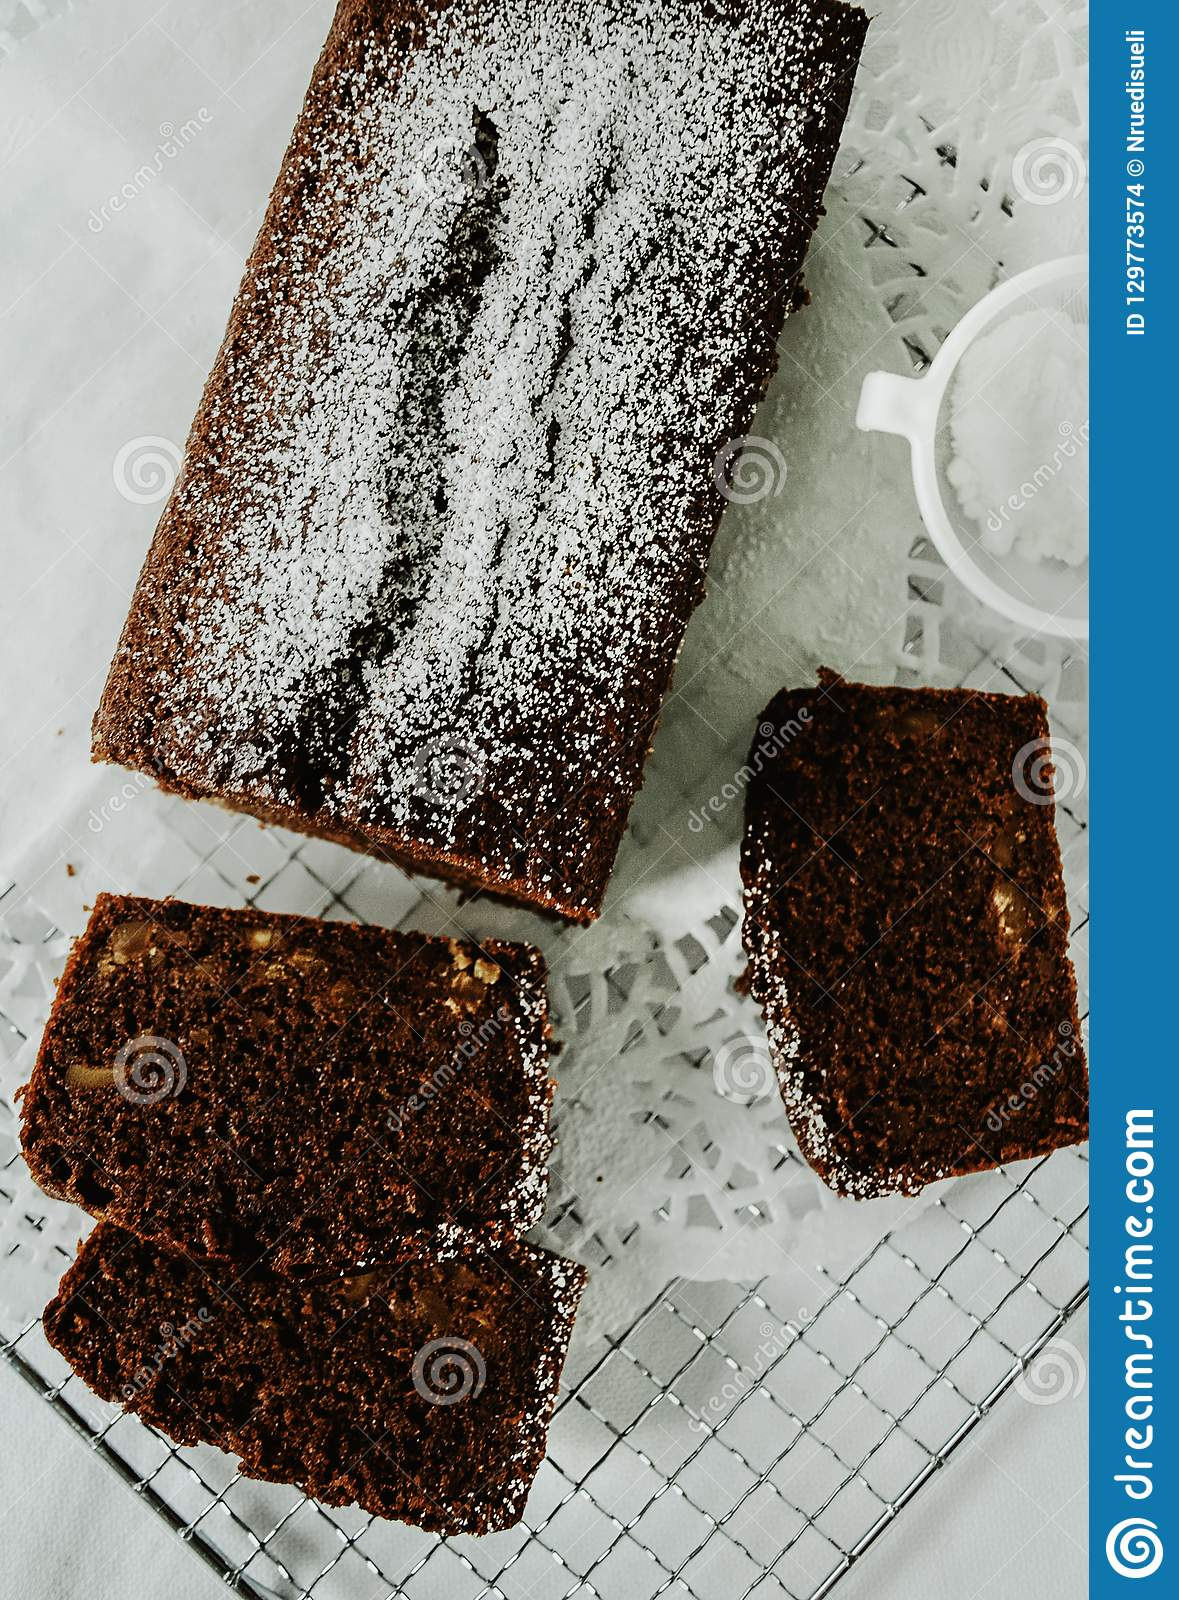 Chocolate cake with nuts inside cut into slices on cooling rack.